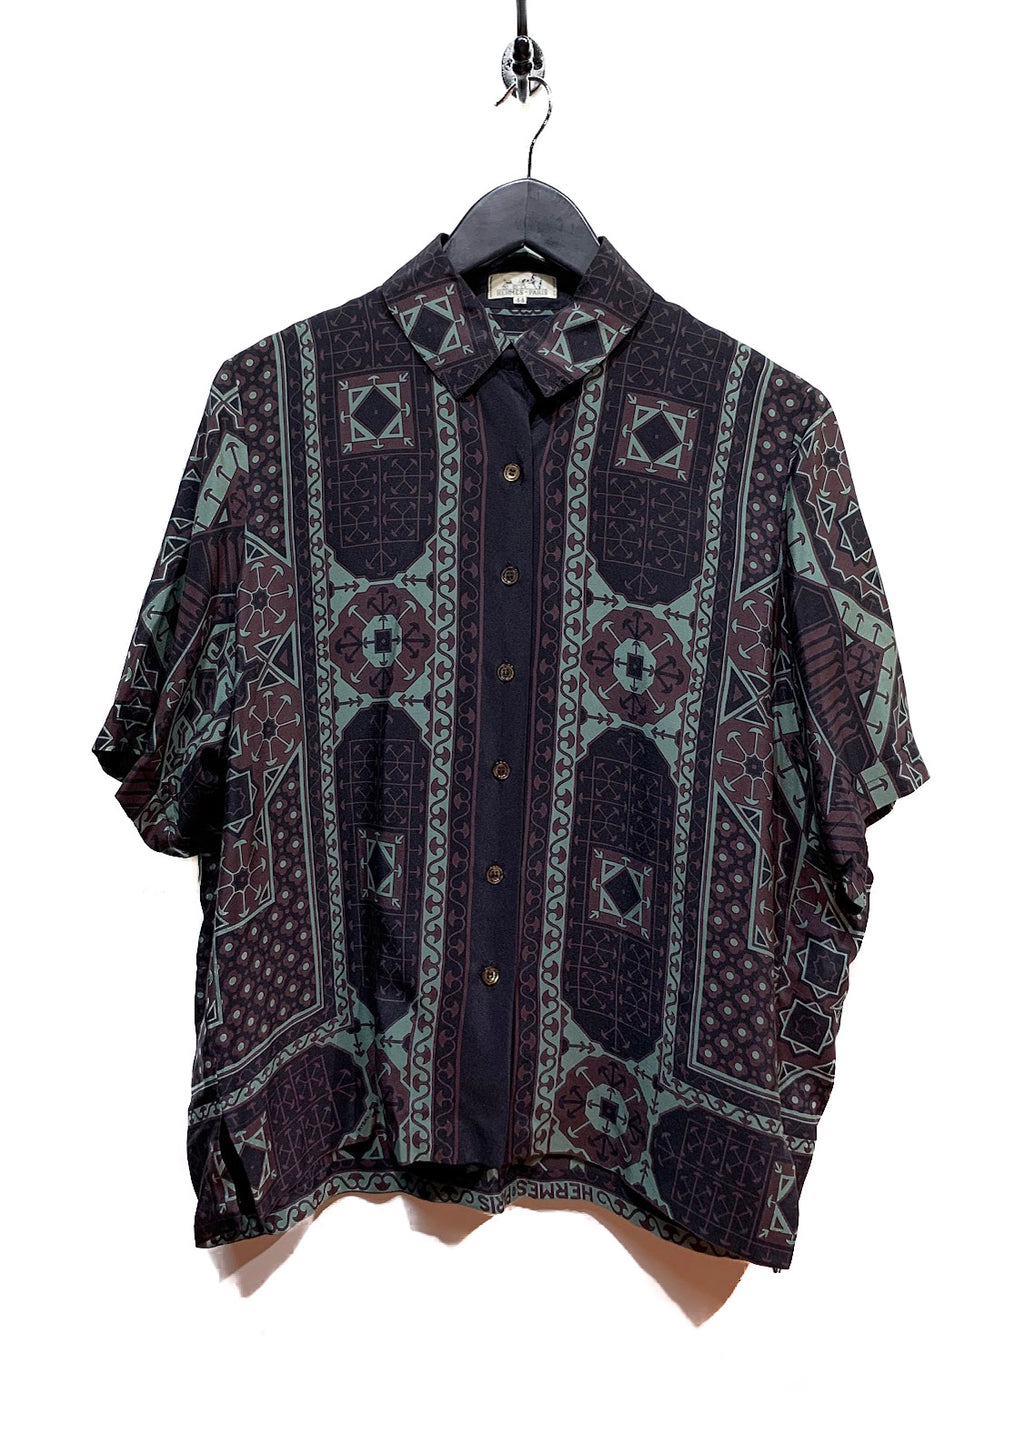 Hermès Vintage Arabia by Rybal Black Printed Silk Blouse Shirt